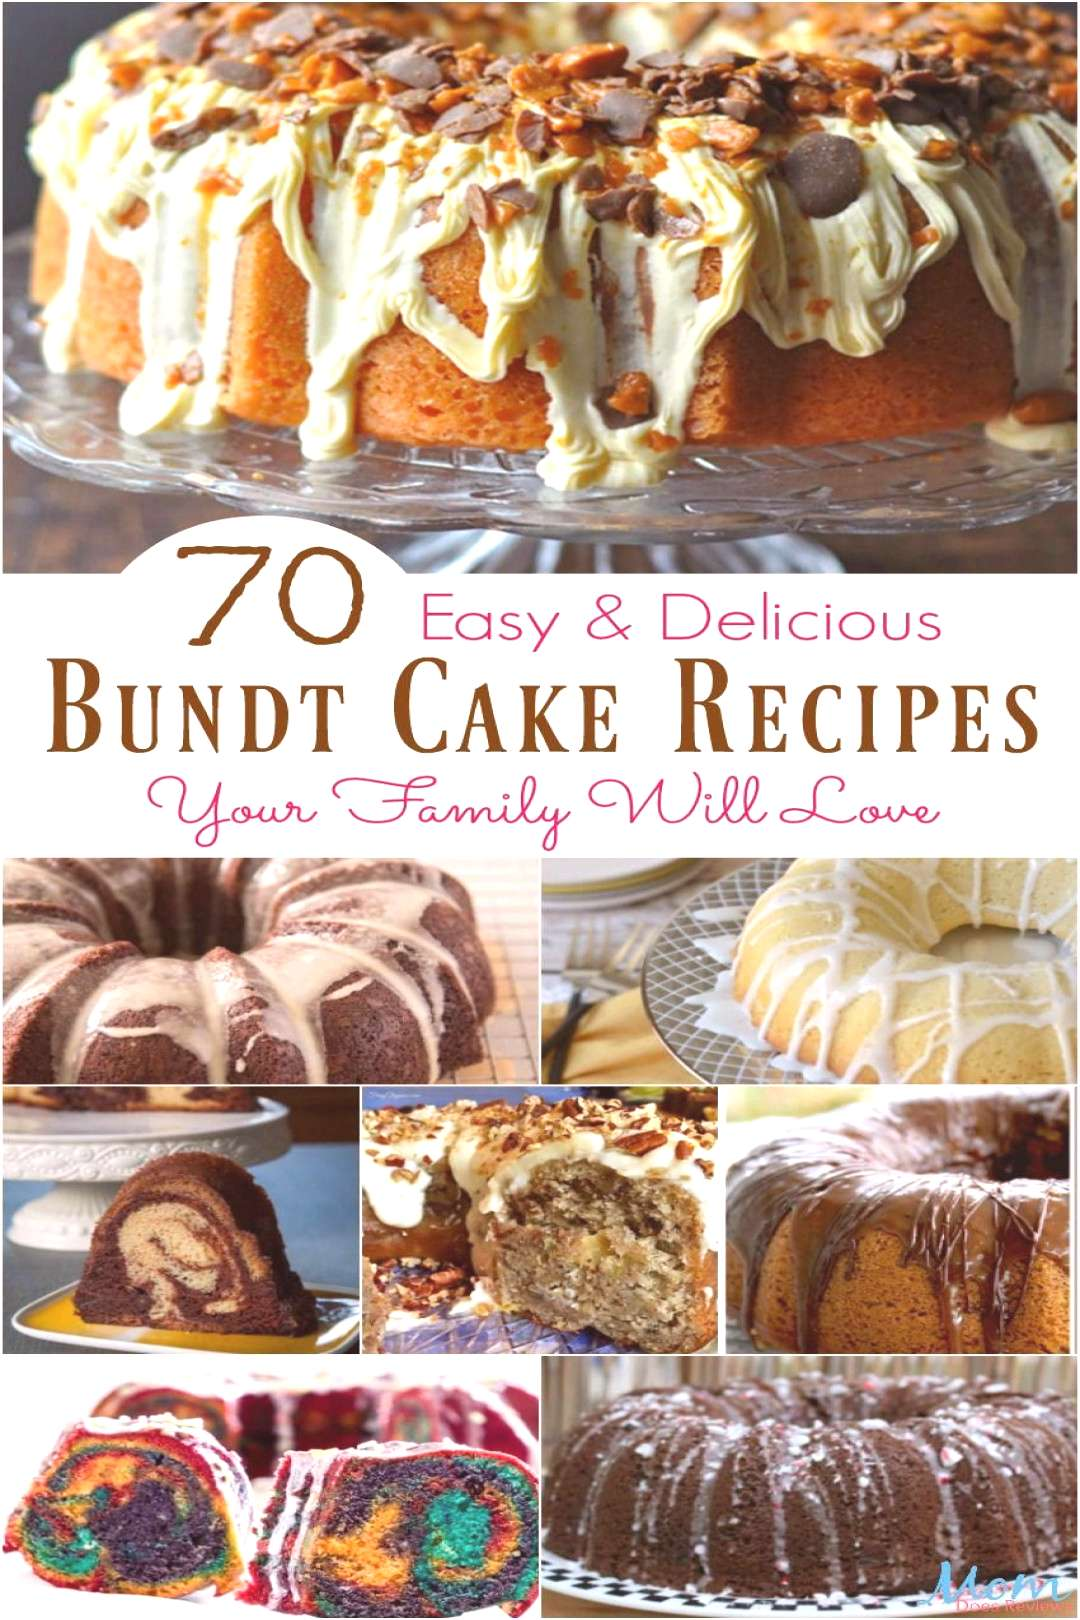 70 Easy amp Delicious Bundt Cake Recipes Your Family Will Love